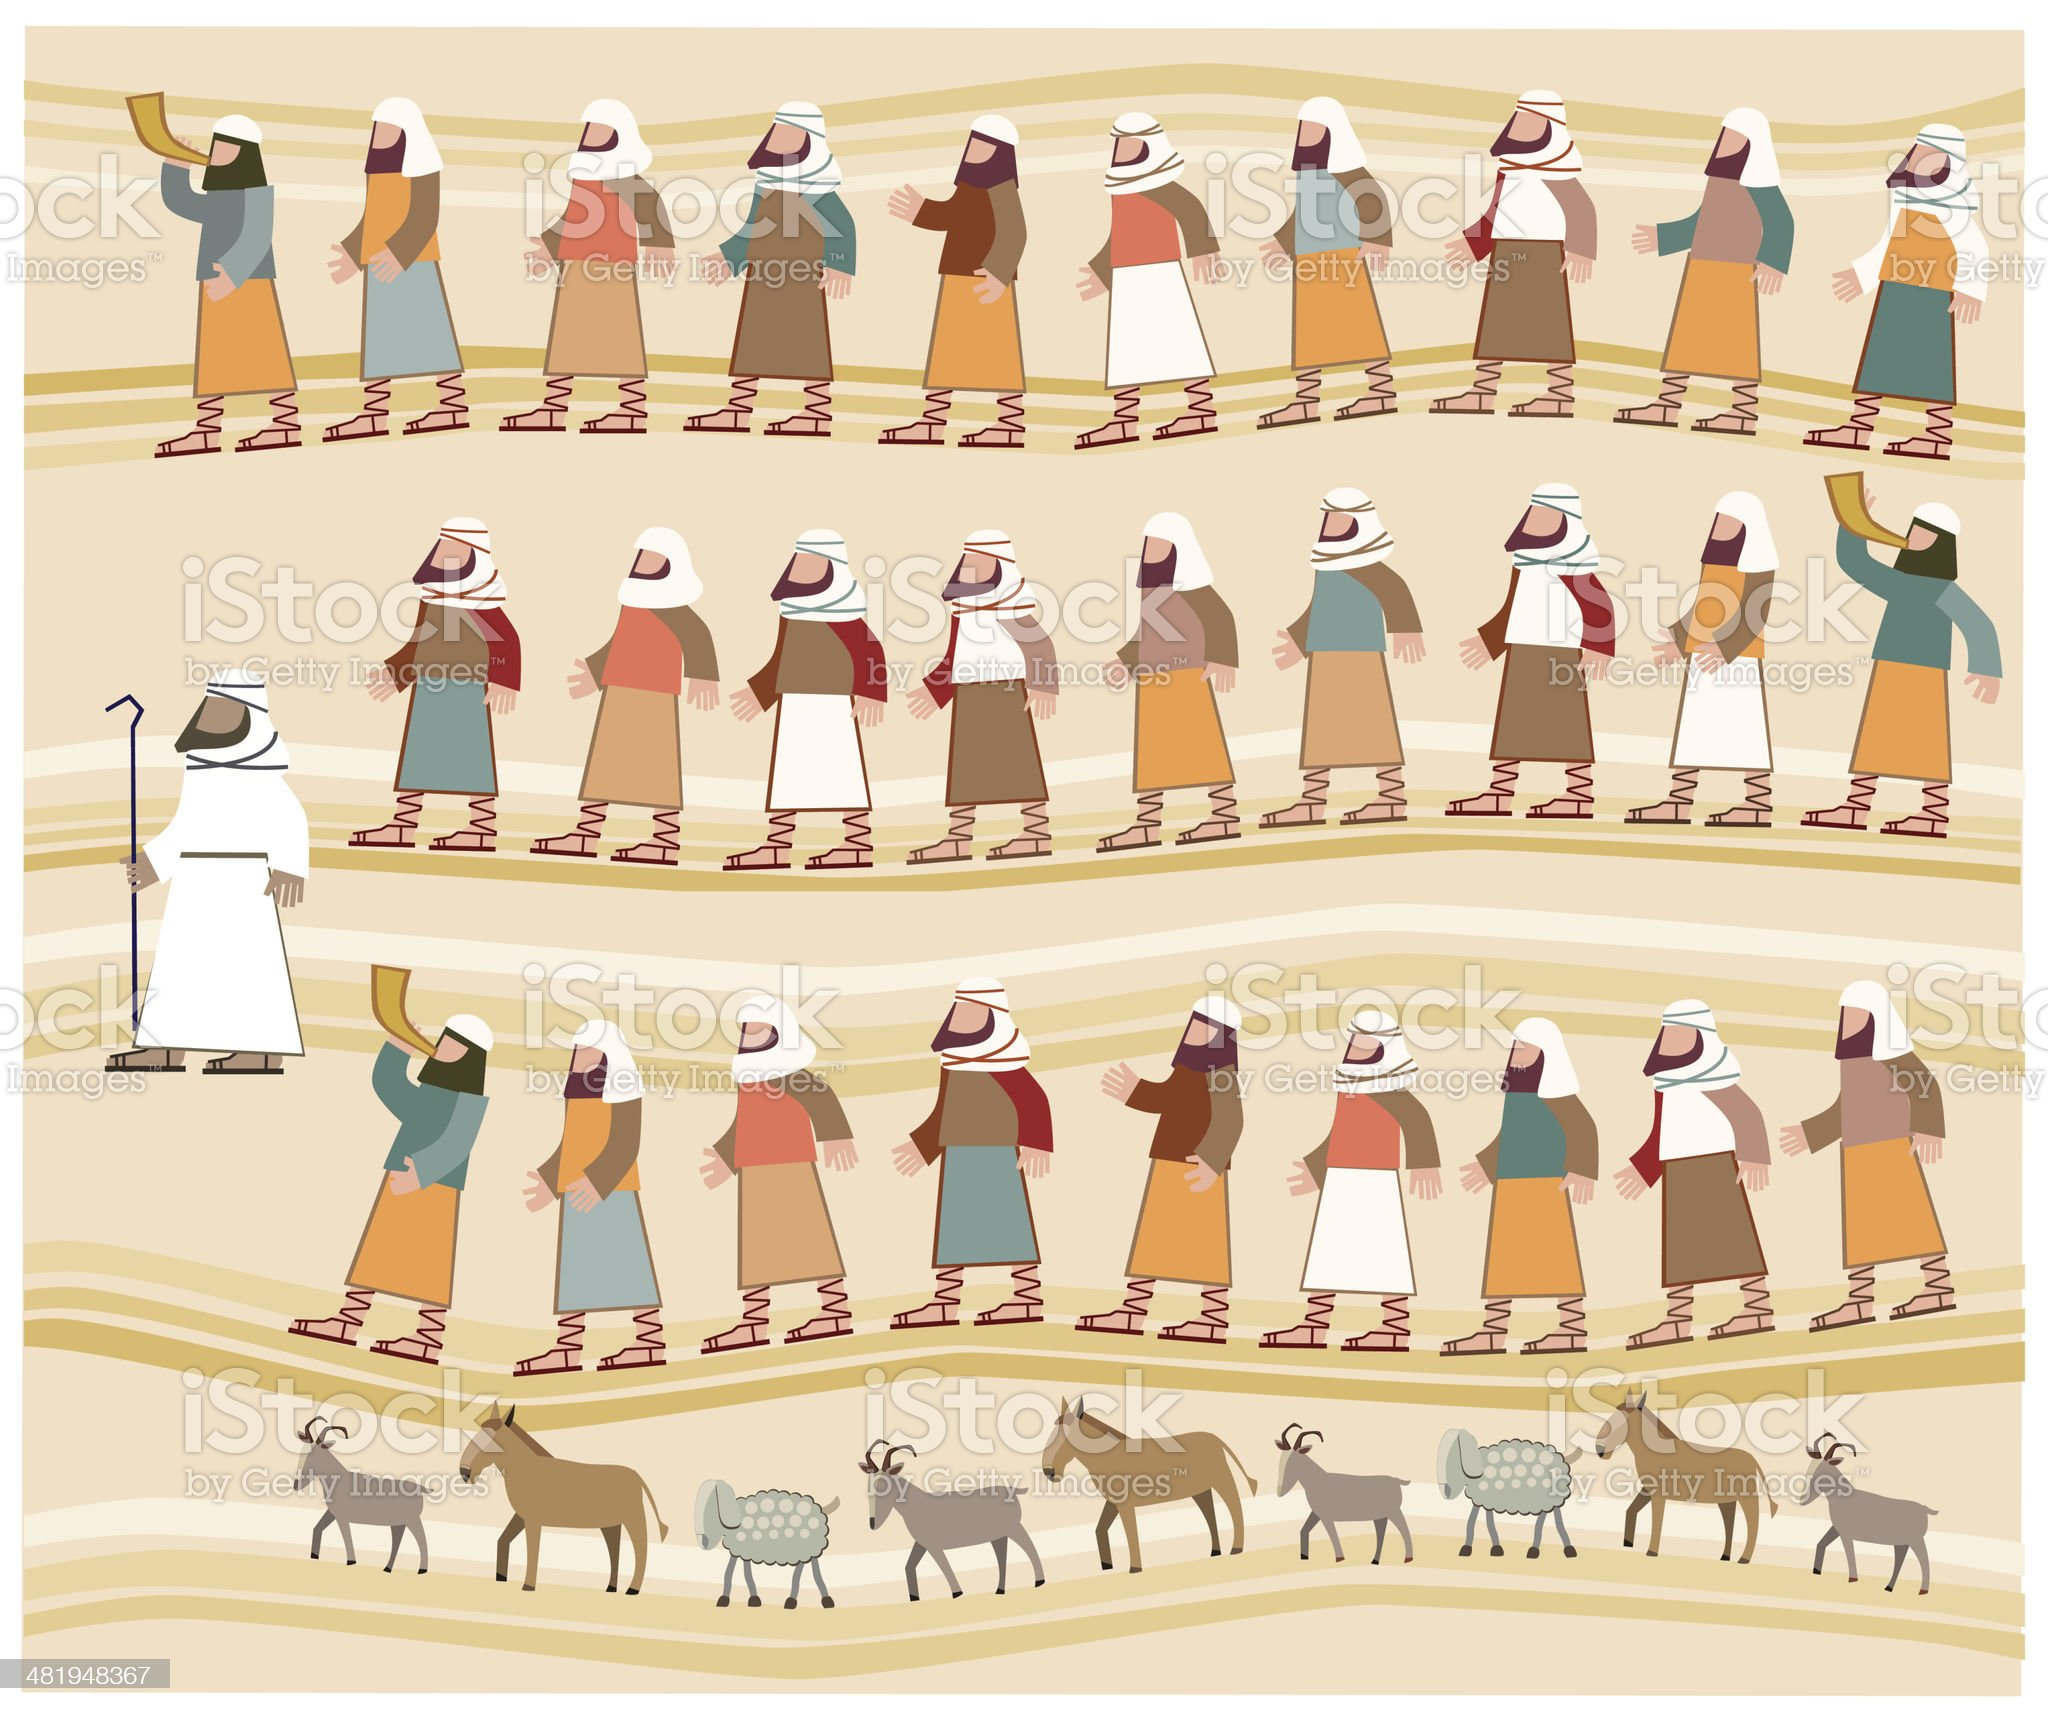 Jews Walking in the Desert, Passover Illustration royalty-free stock vector art